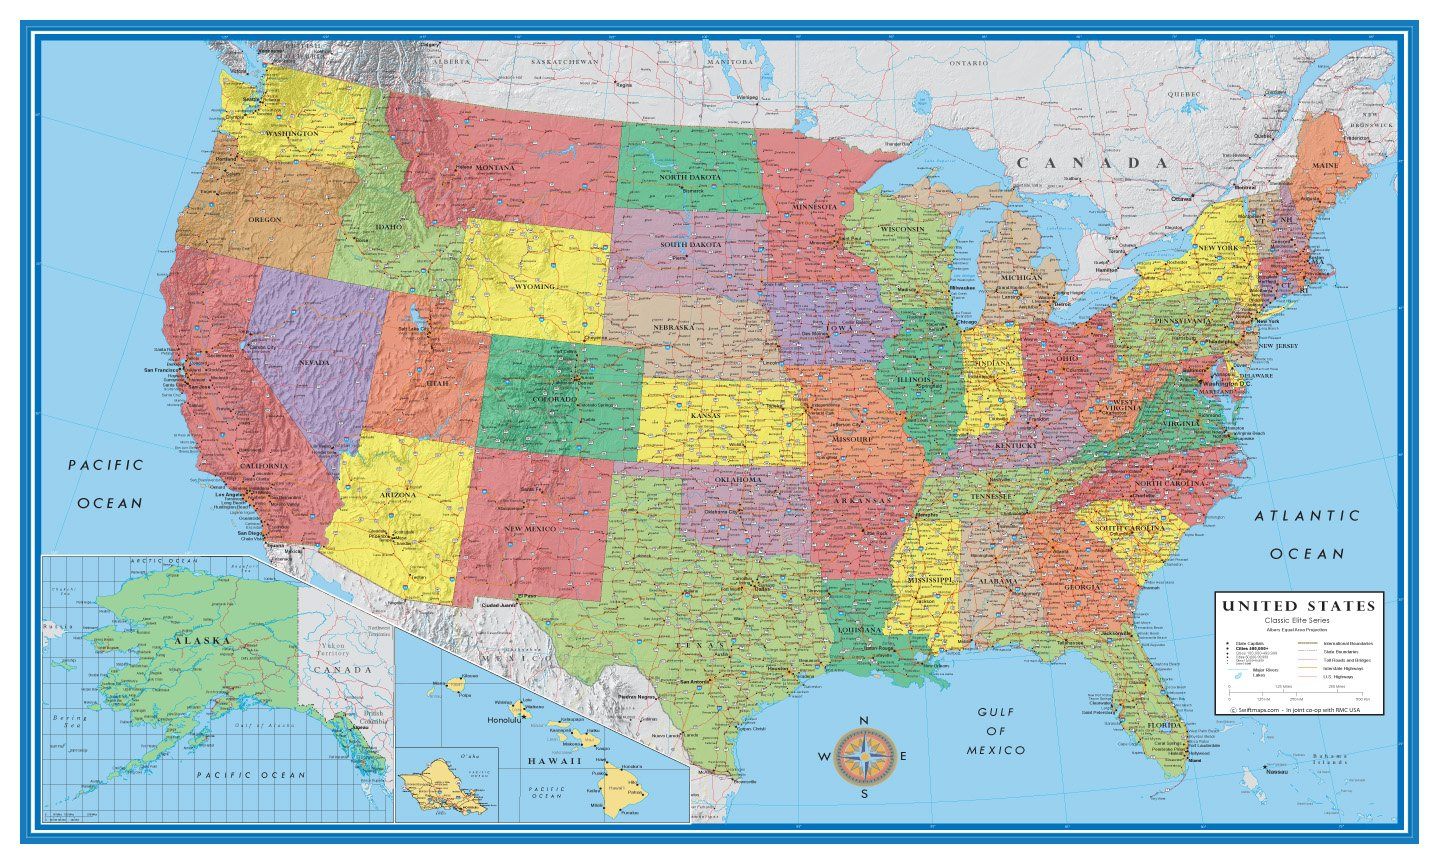 Amazoncom X United States USA Classic Elite Wall Map Mural - A map of the united states of america